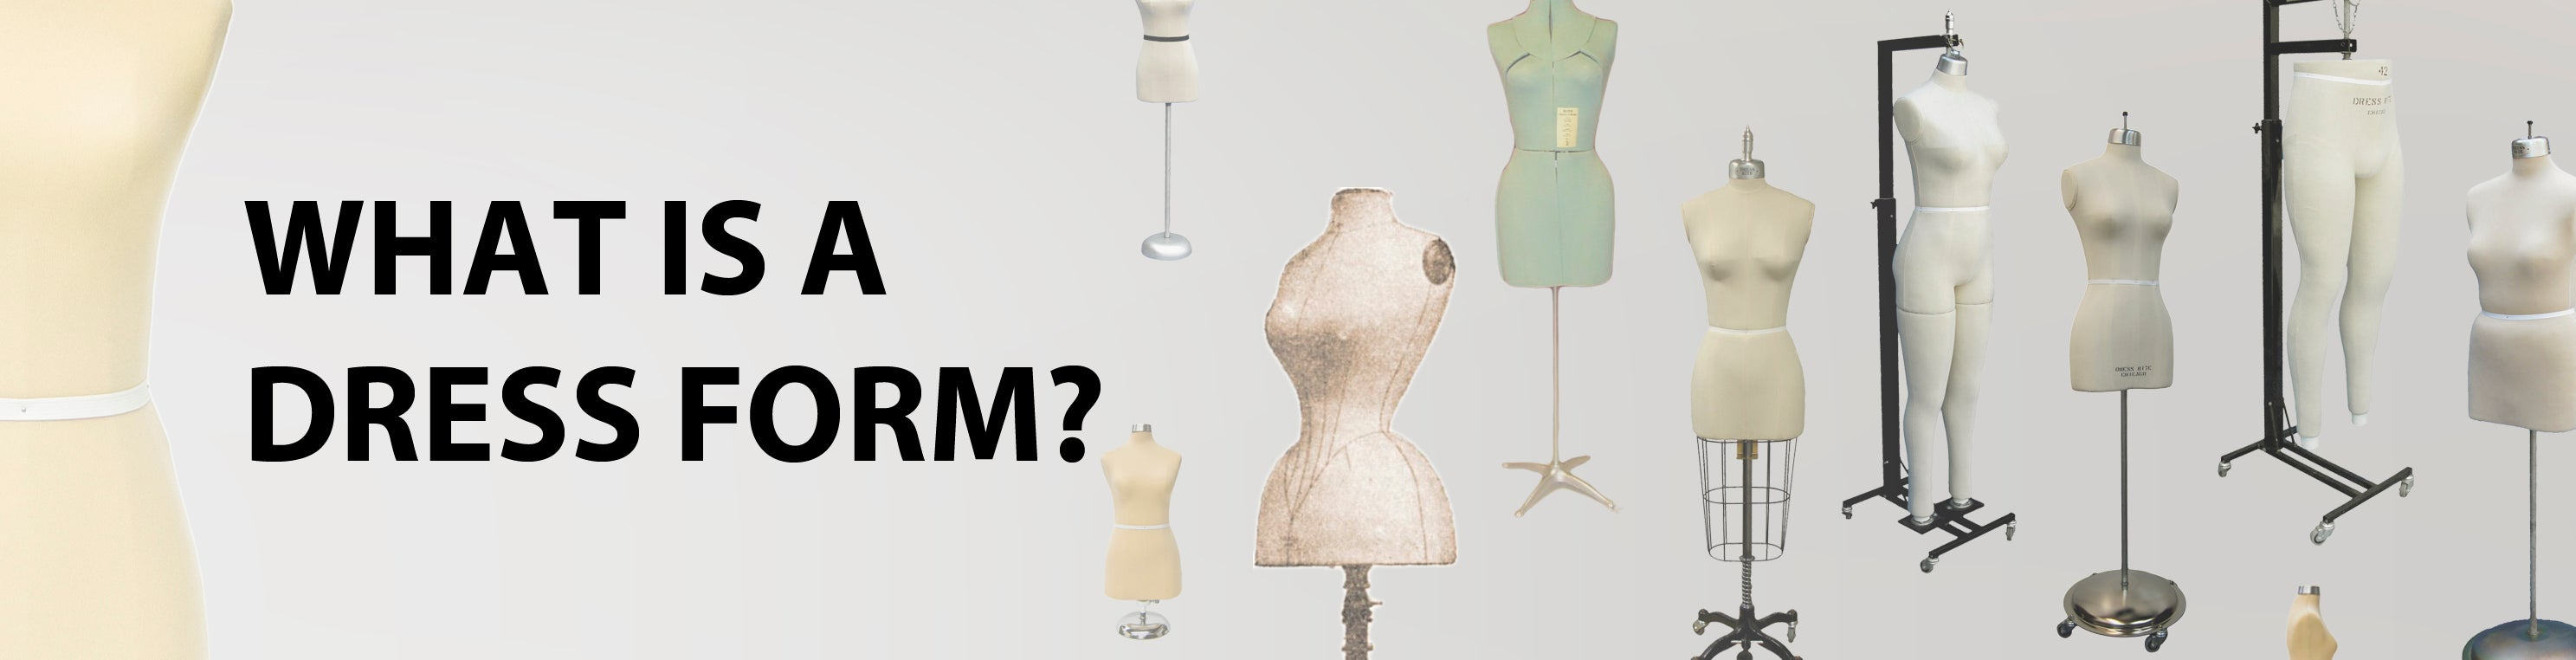 What is a dress form?